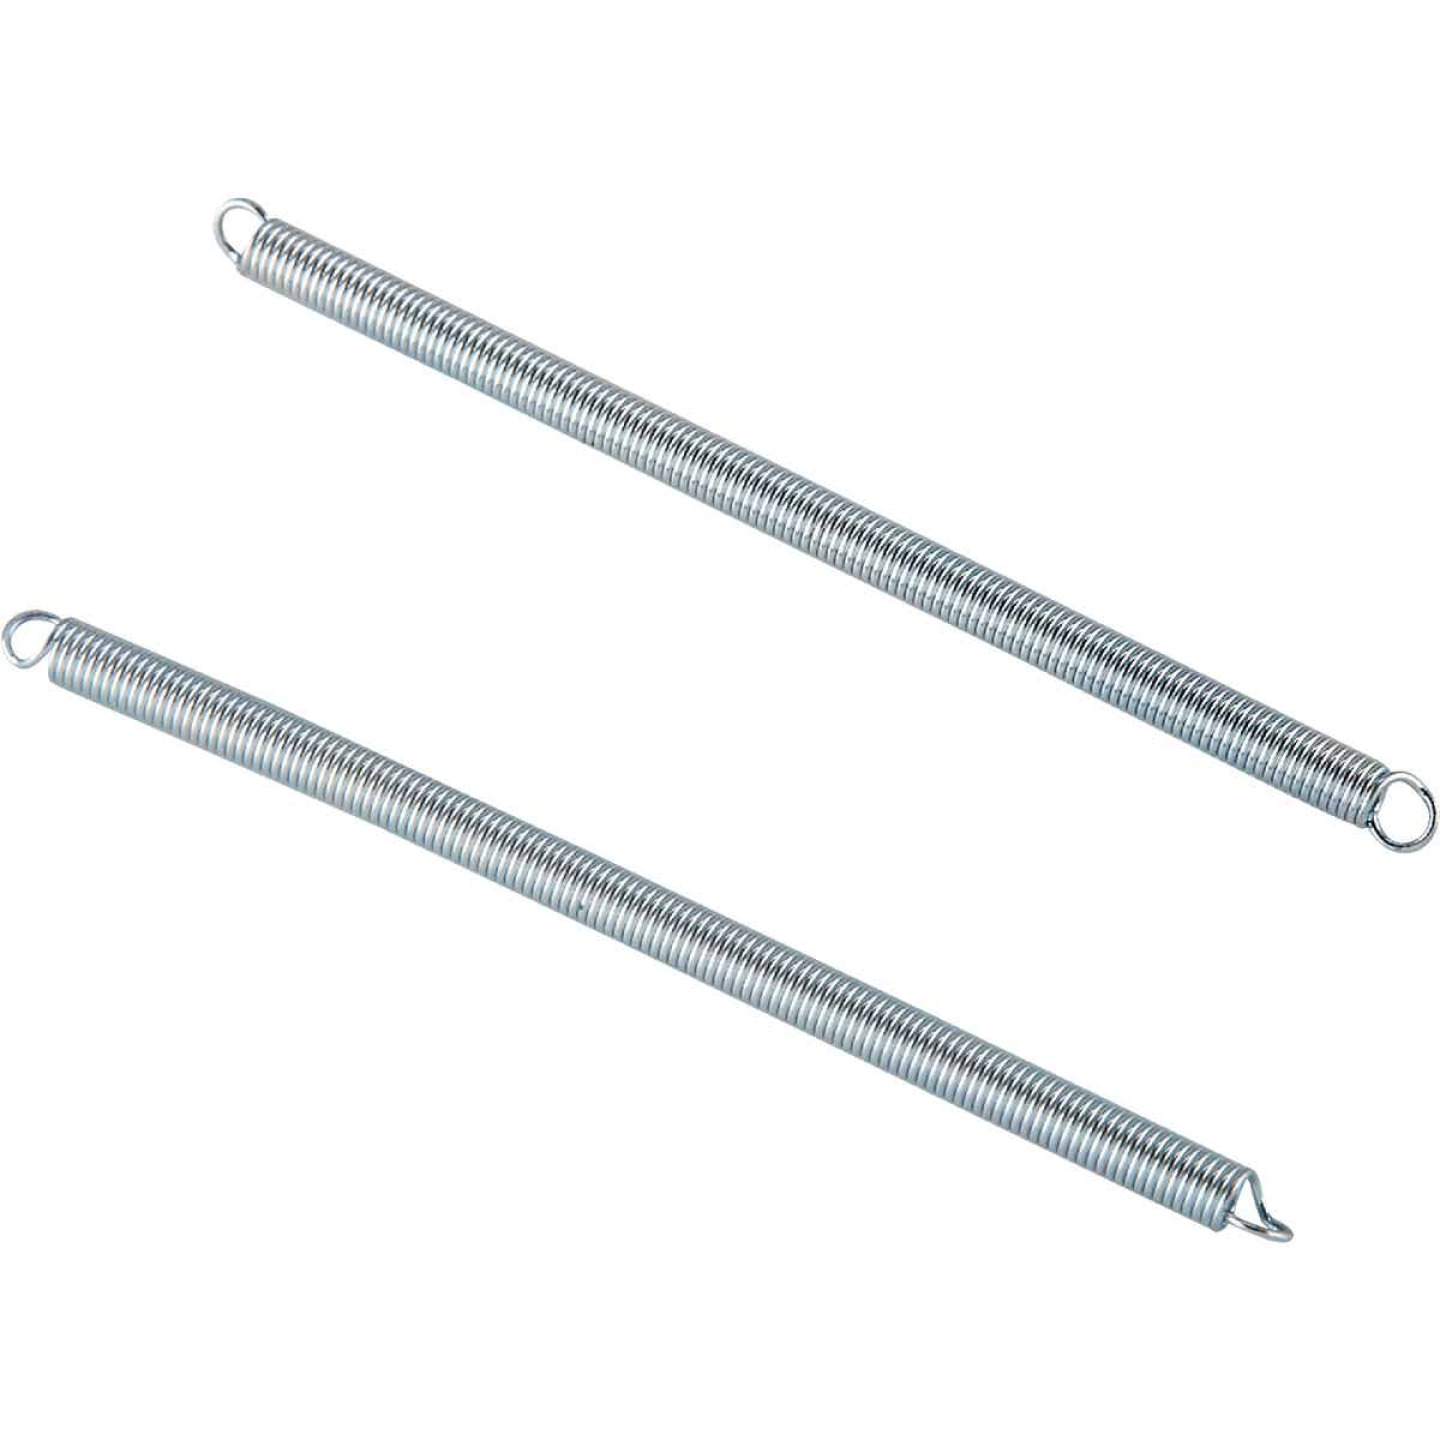 Century Spring 6-3/4 In. x 3/8 In. Extension Spring (1 Count) Image 1